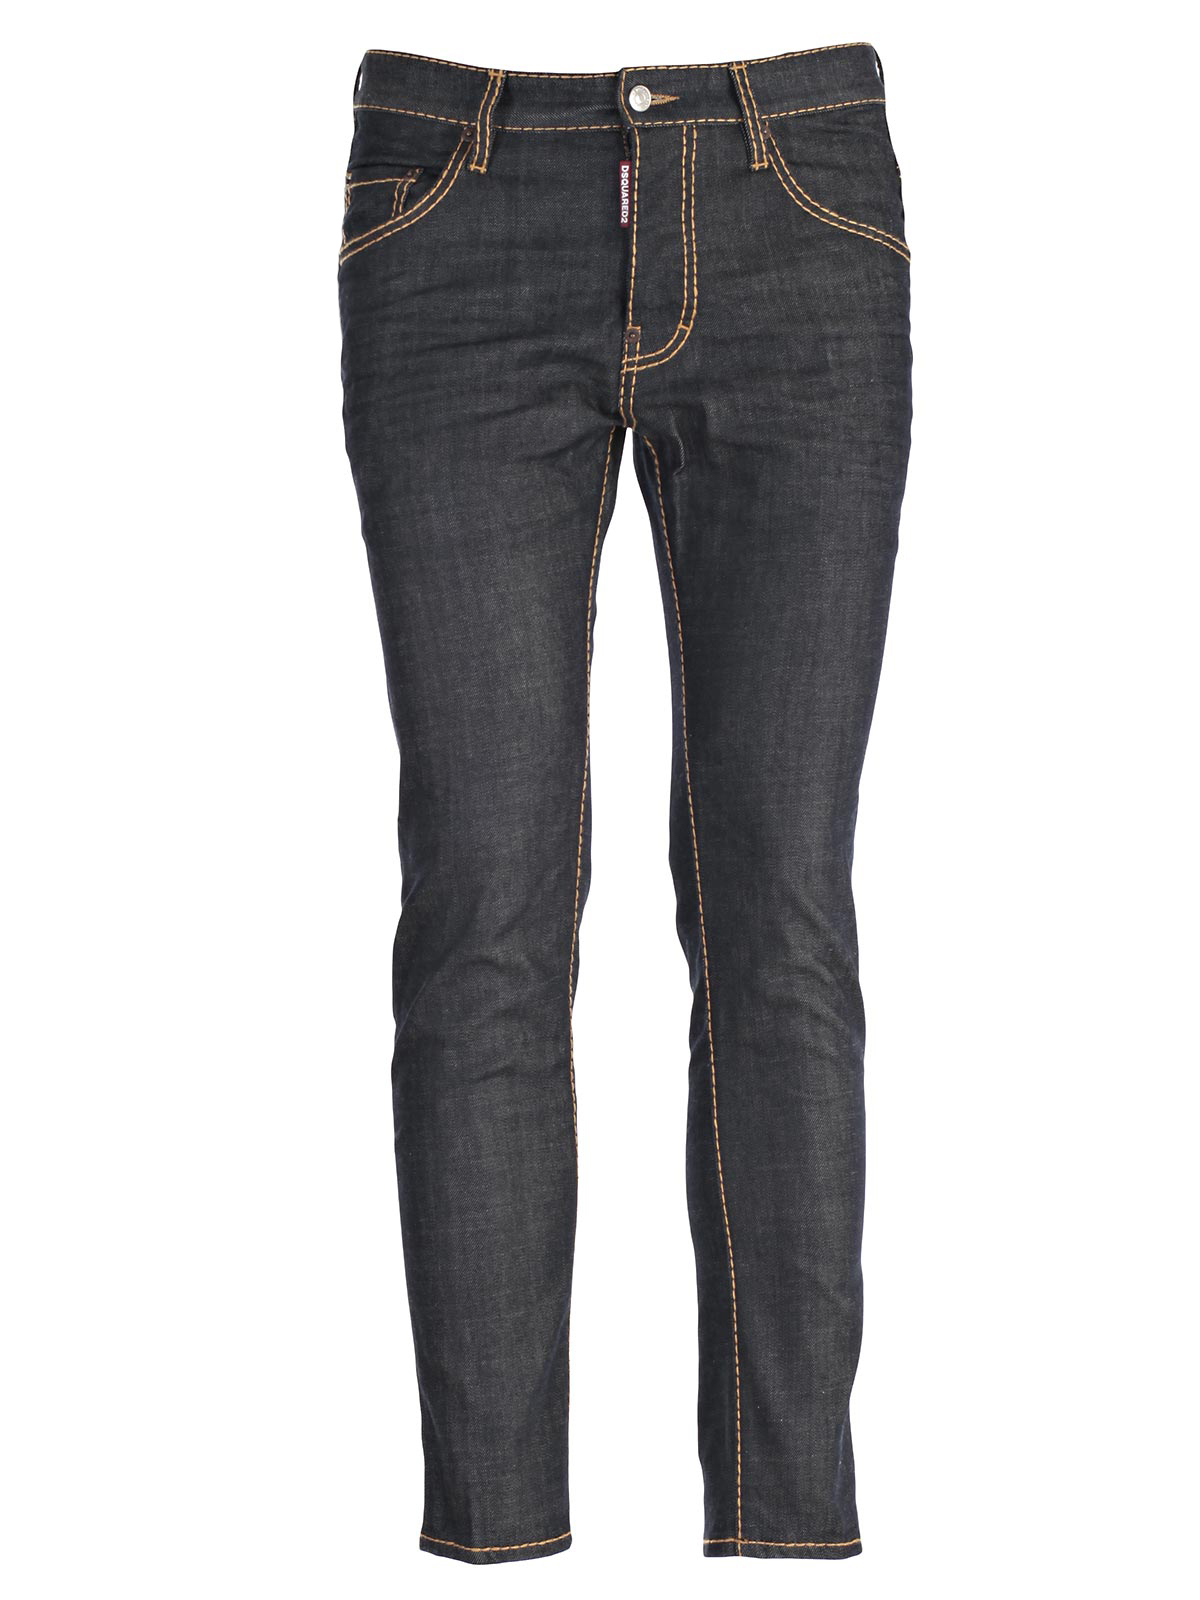 Picture of DSQUARED2 JEANS JEANS SKATER IMPUNTURE GROSSE